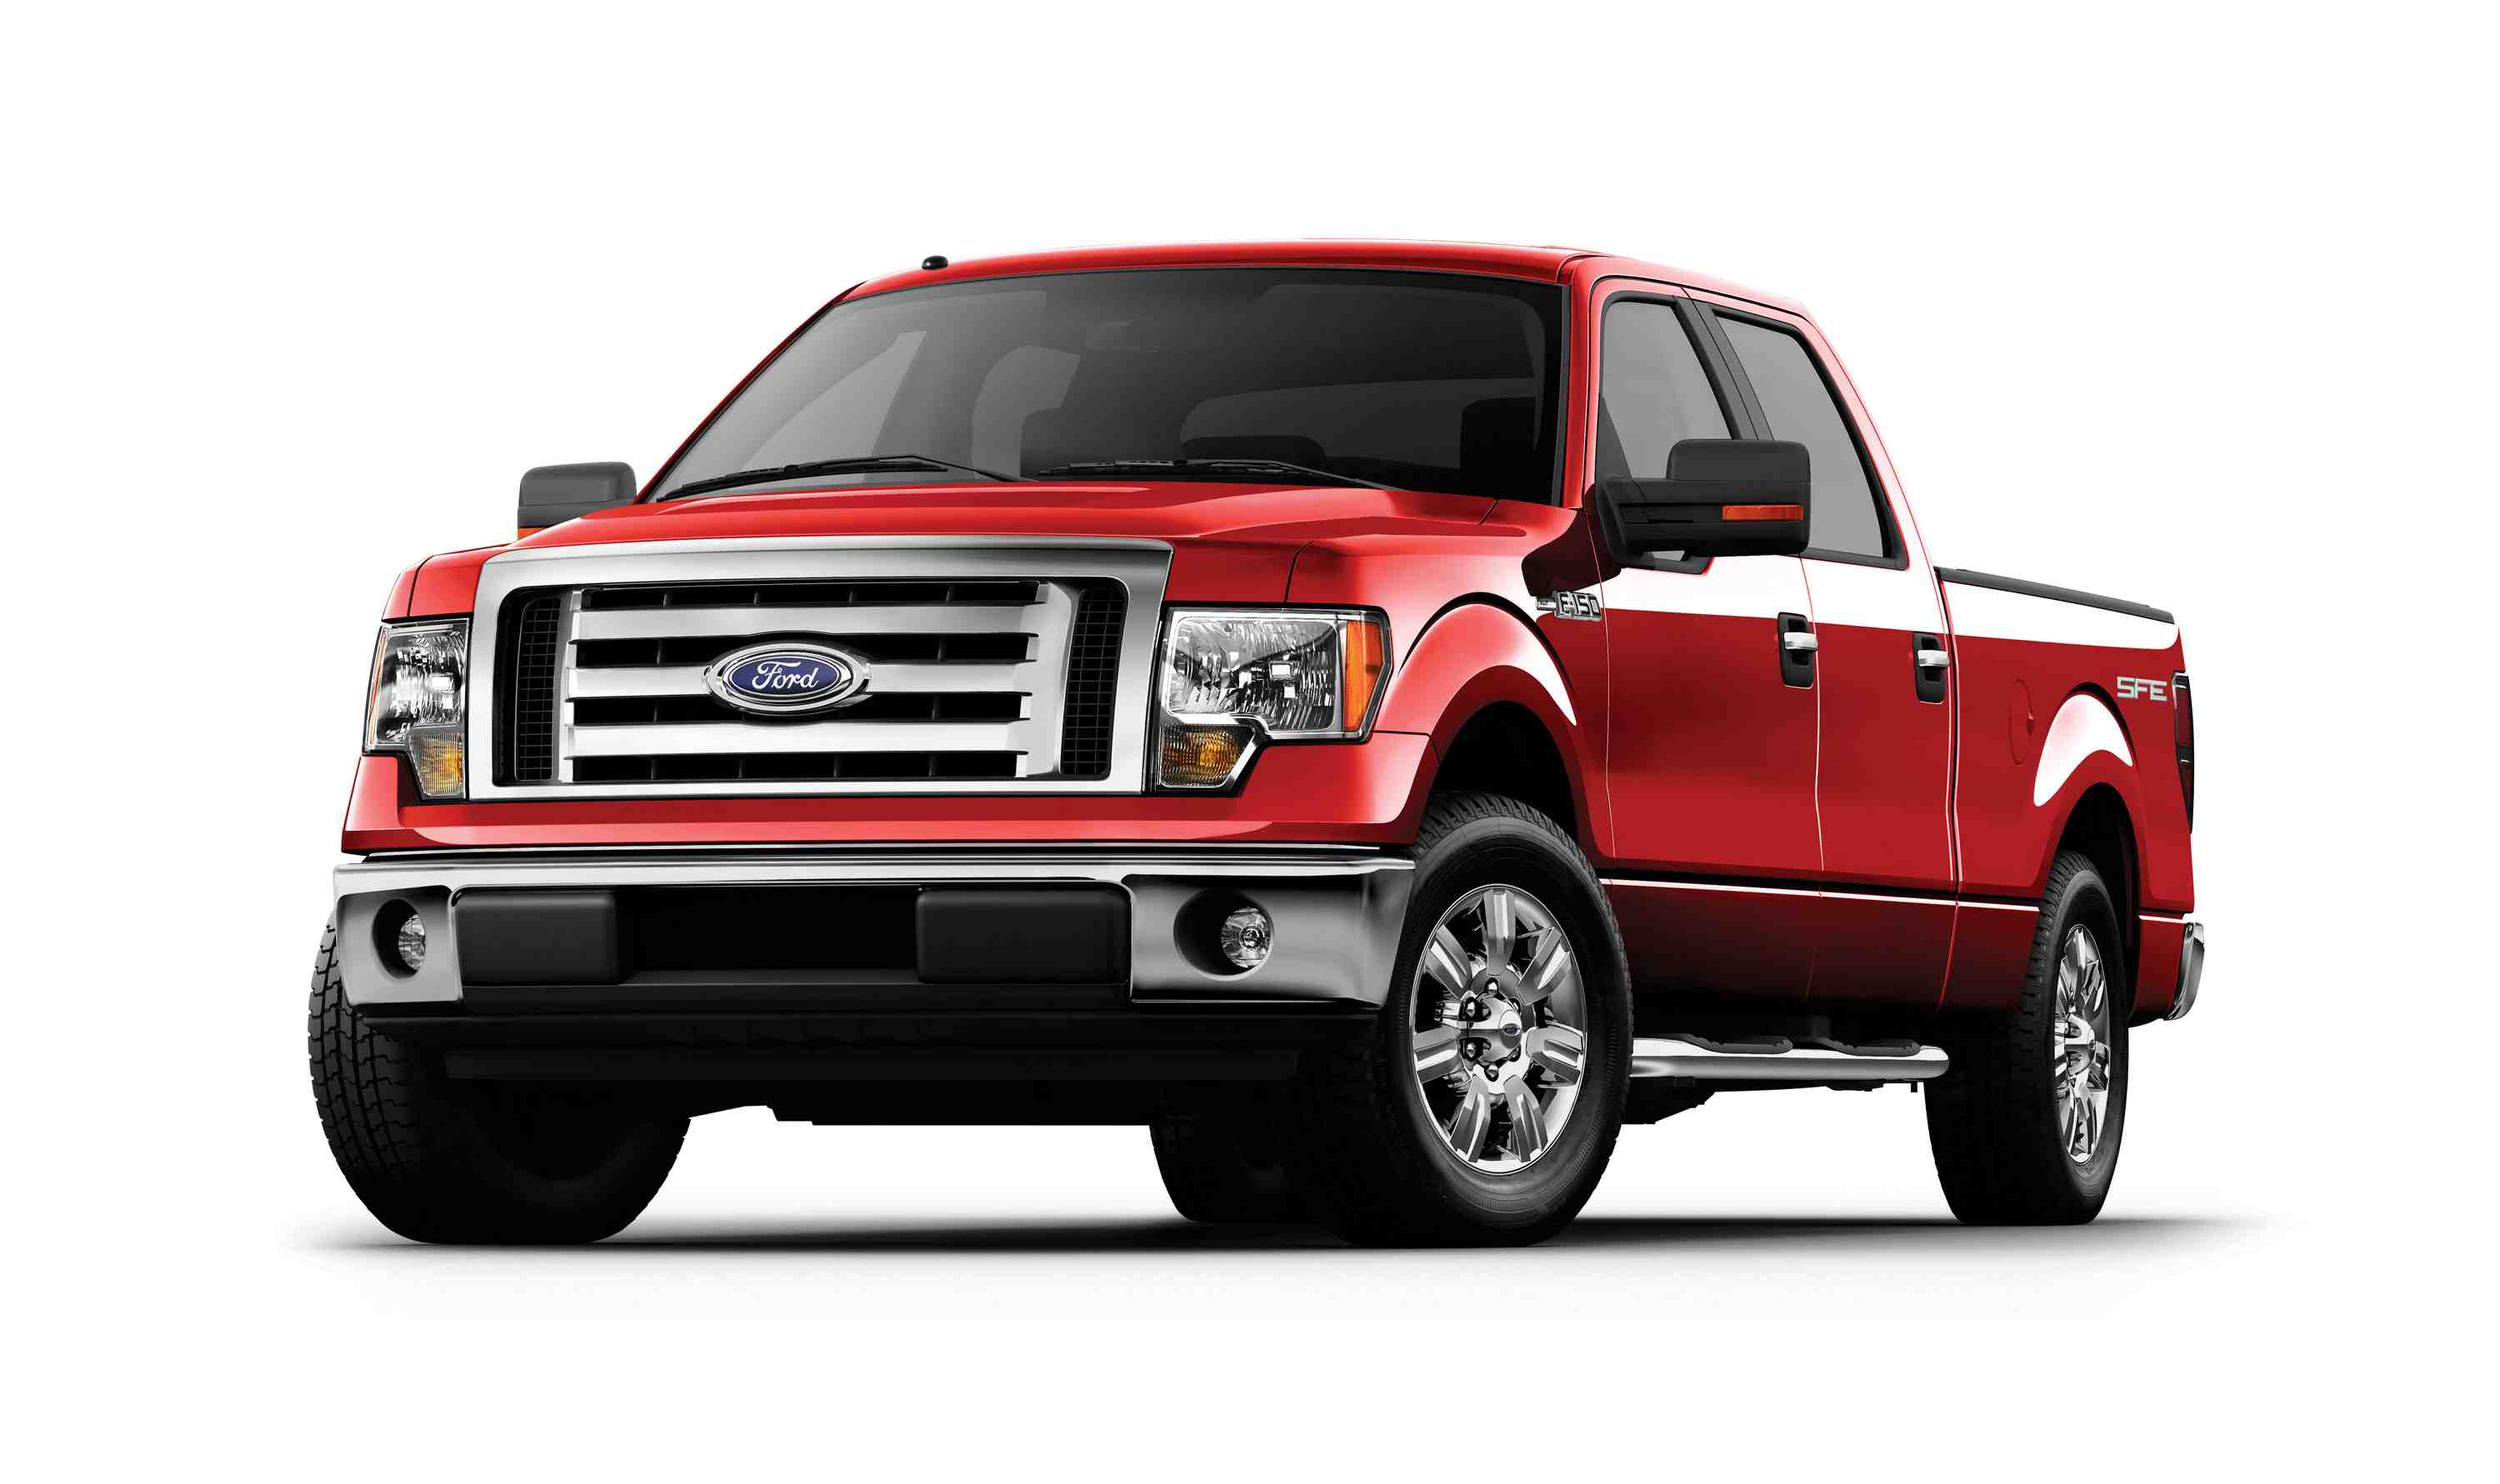 2009 ford f 150 red 200 interior and exterior images. Black Bedroom Furniture Sets. Home Design Ideas